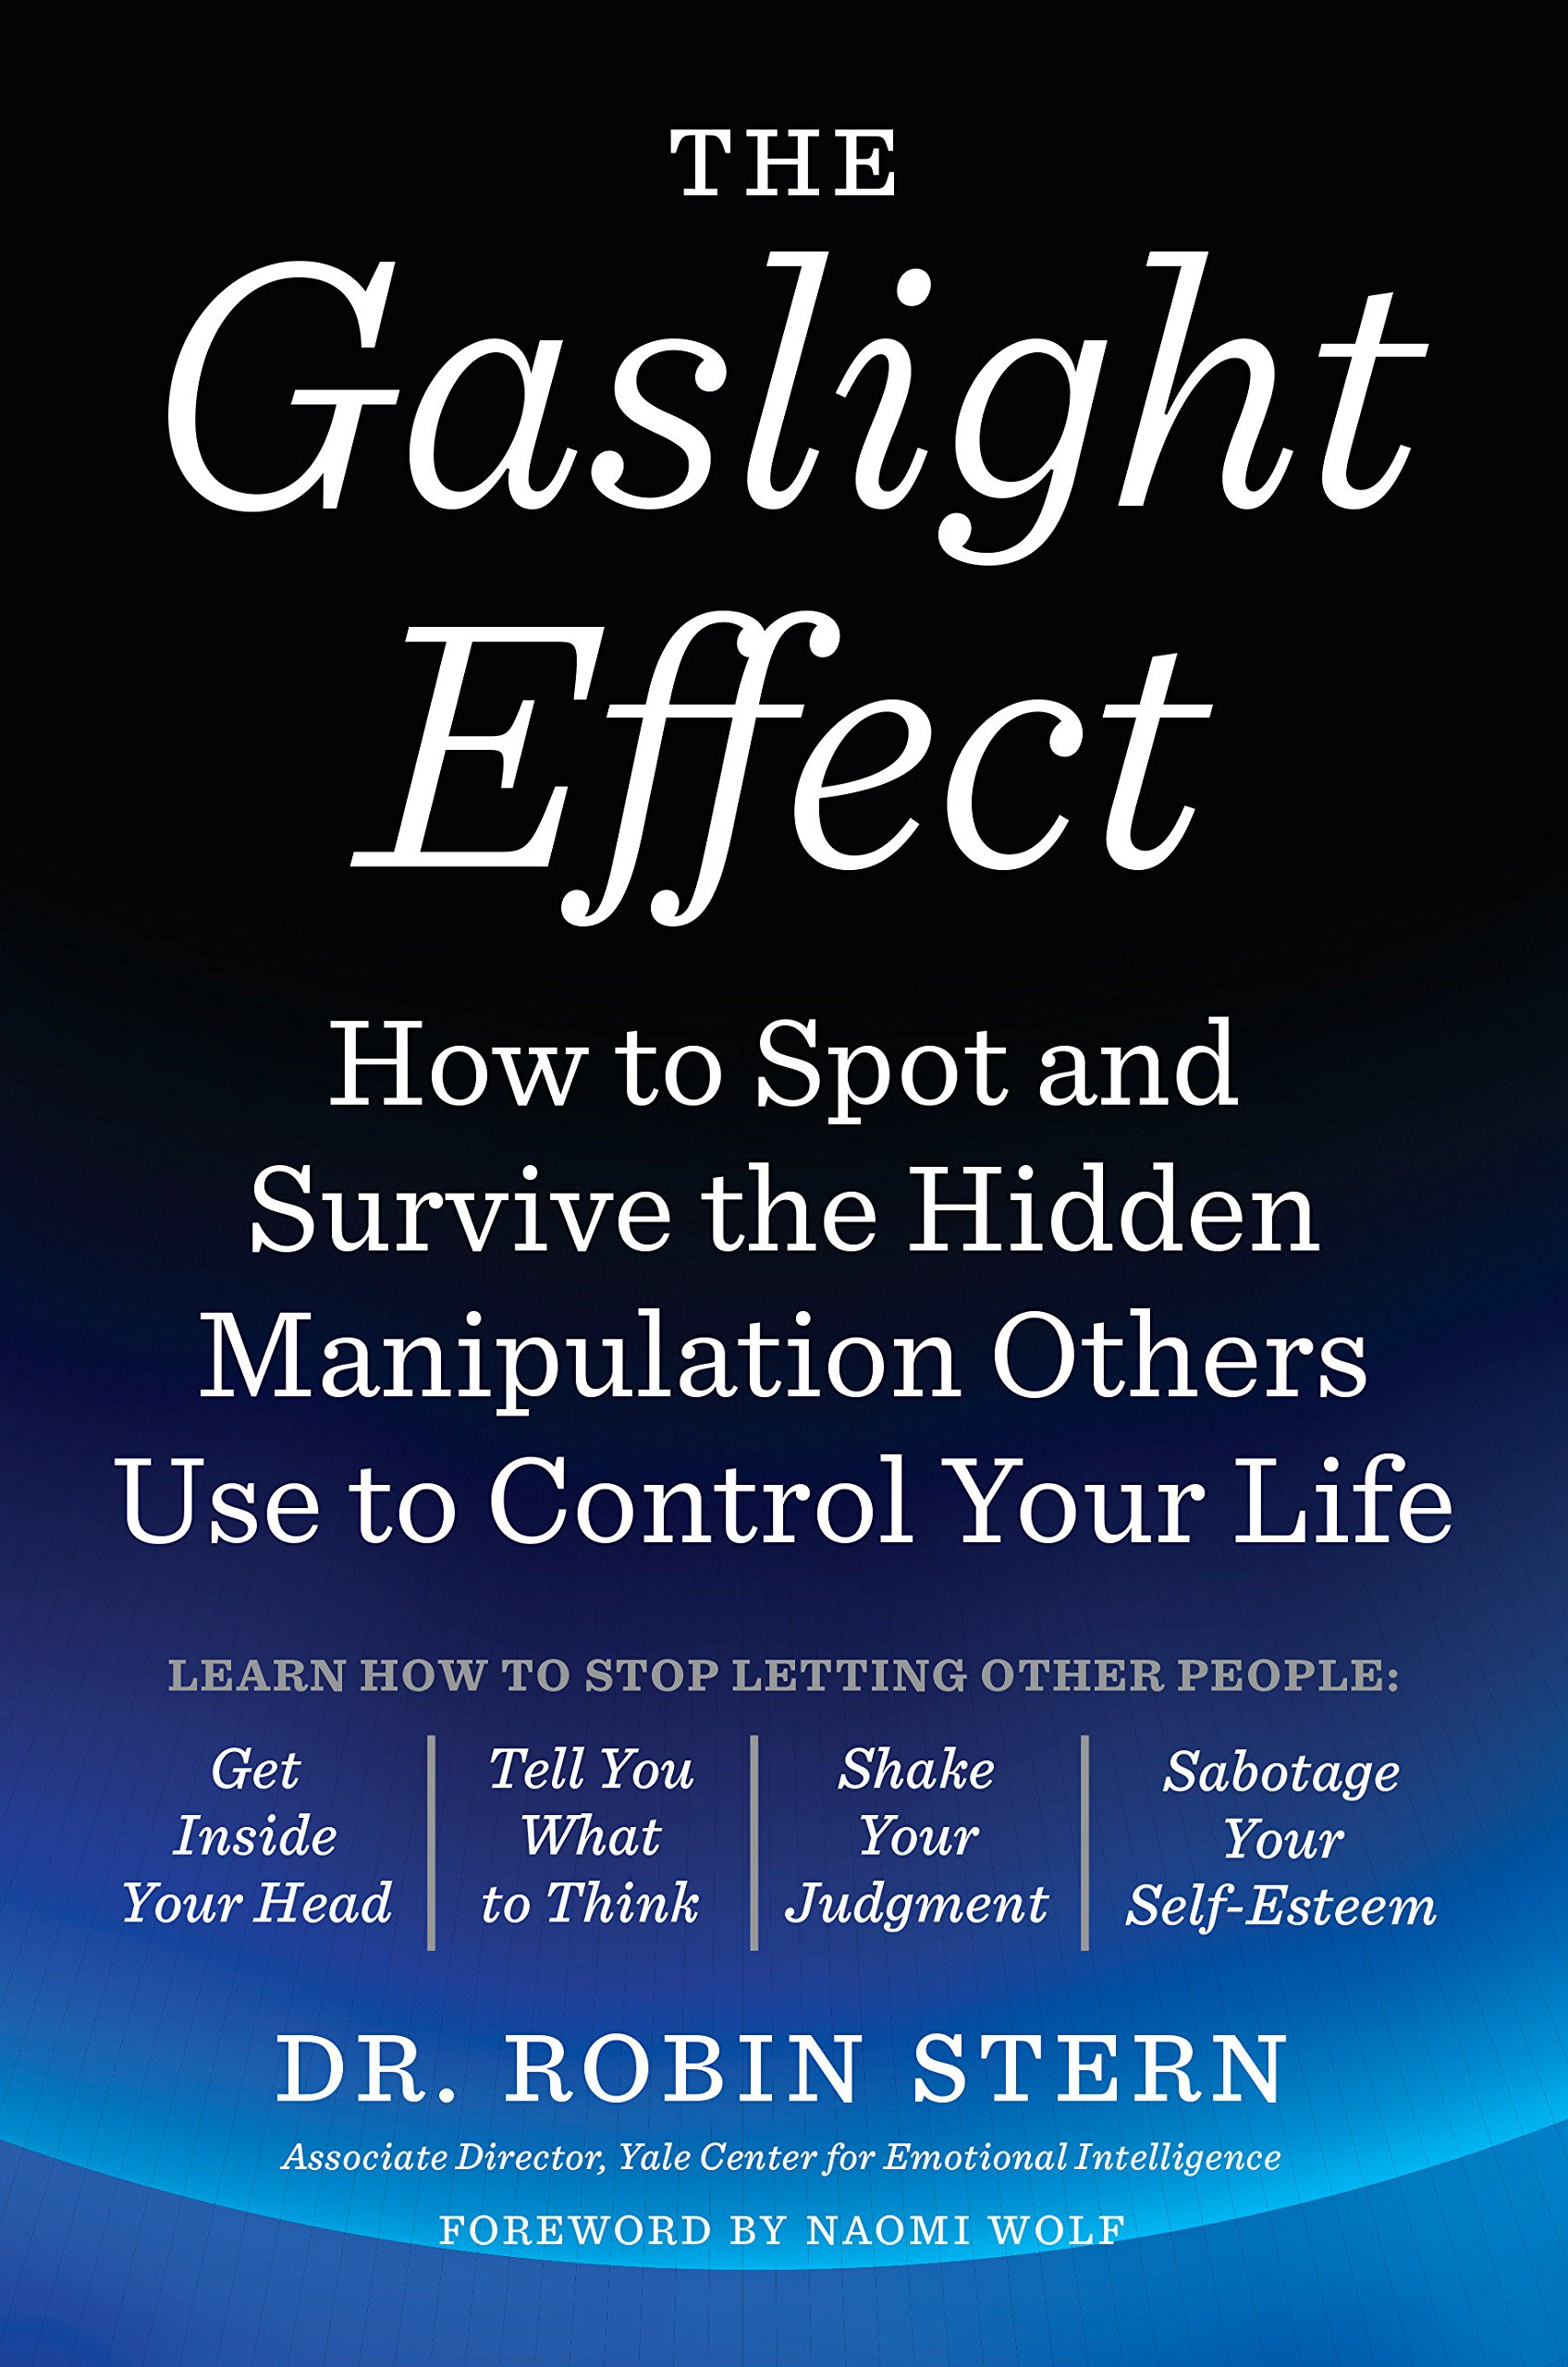 gaslighting books